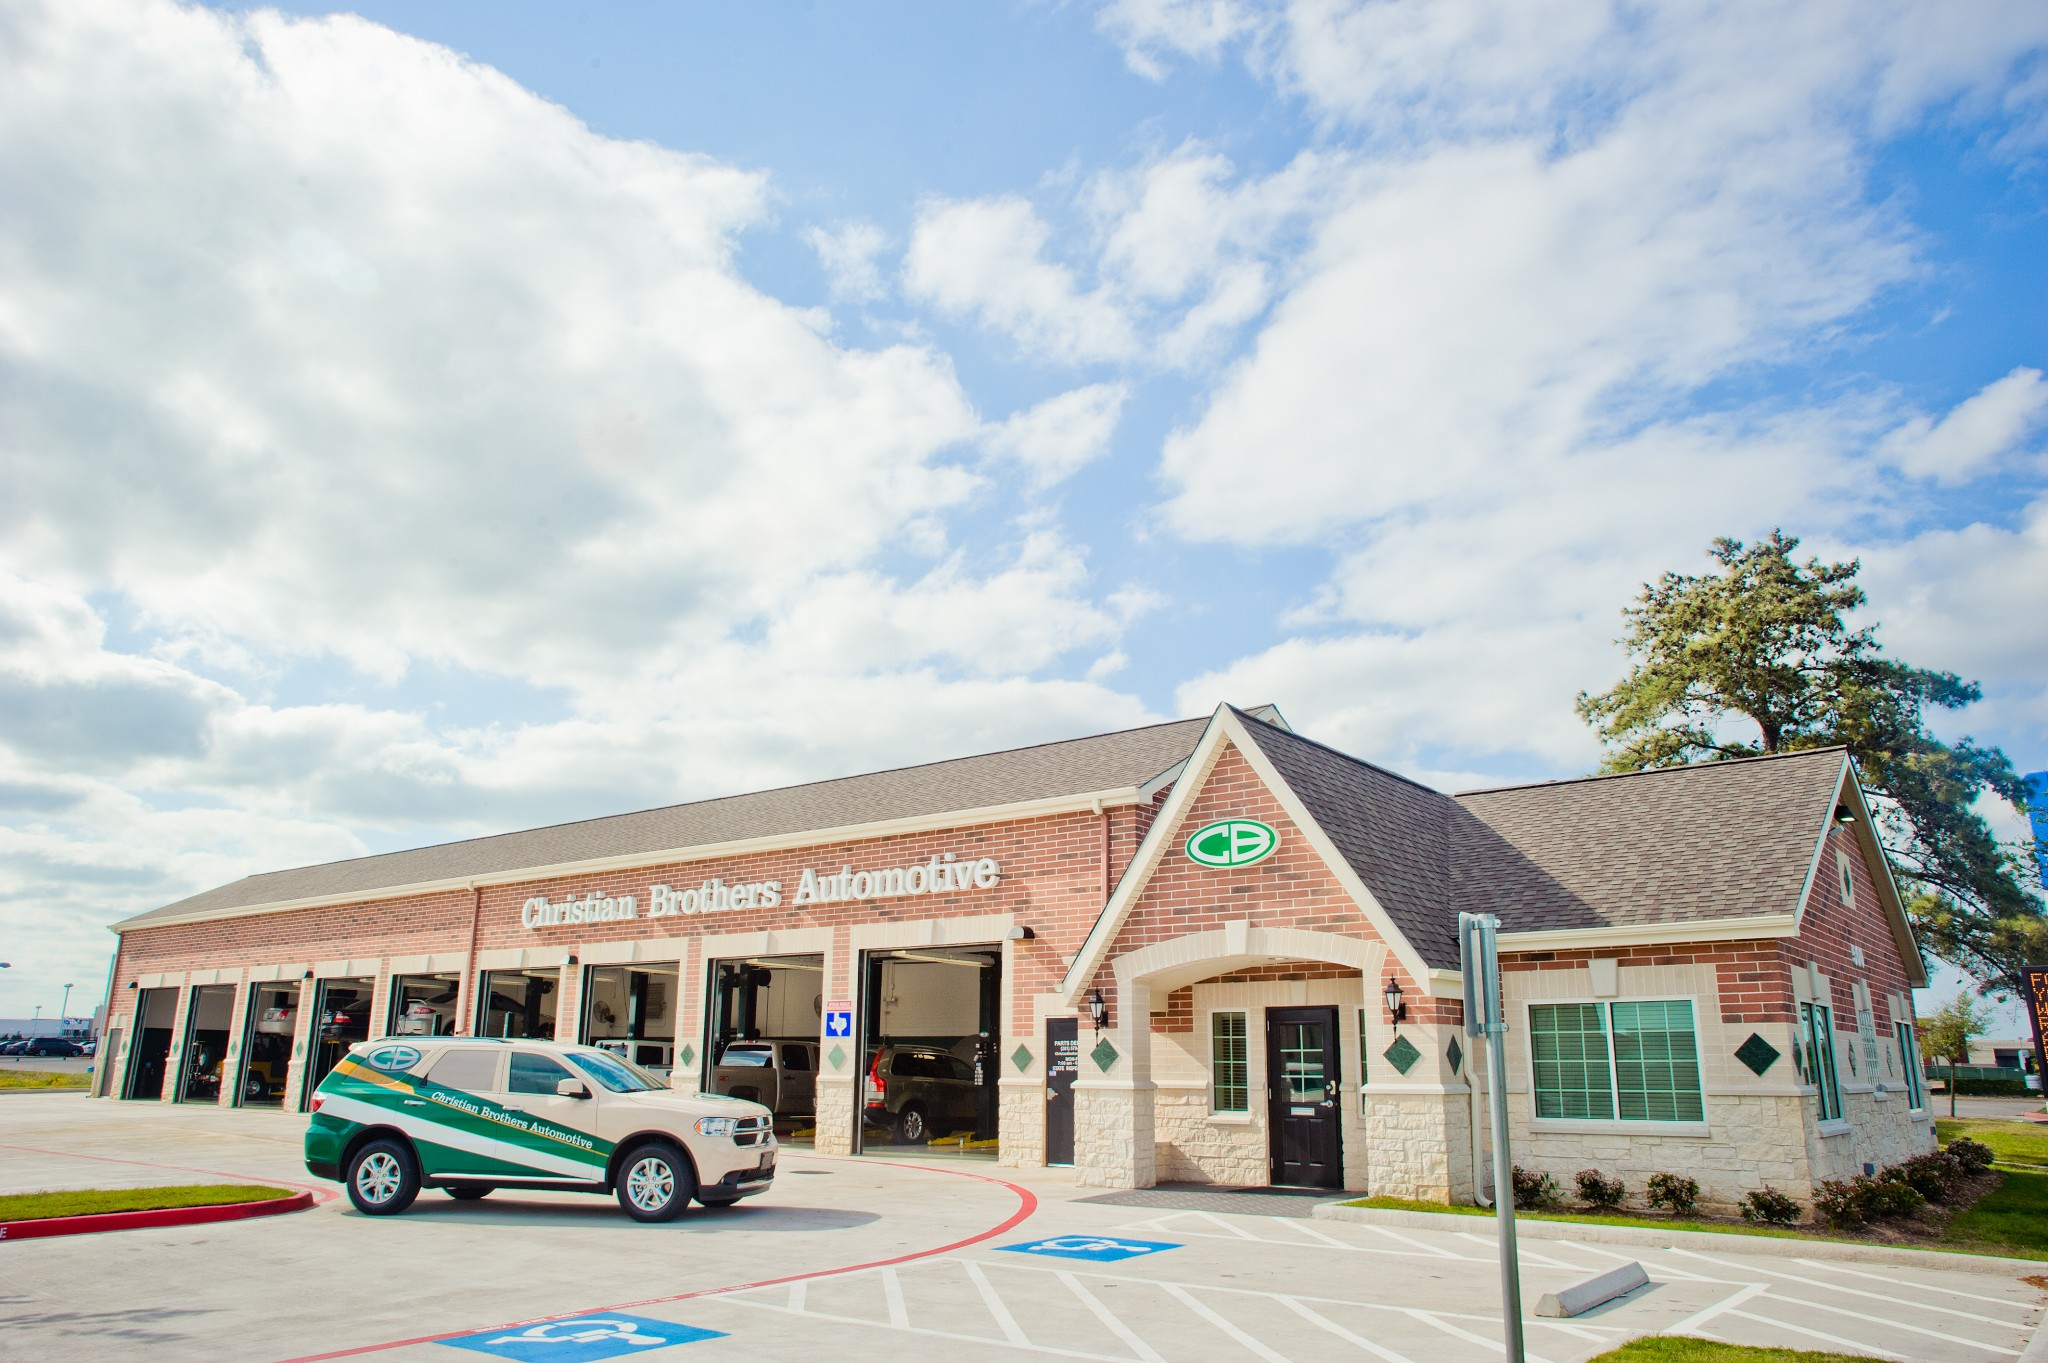 Christian Brothers Automotive store openings drive record year